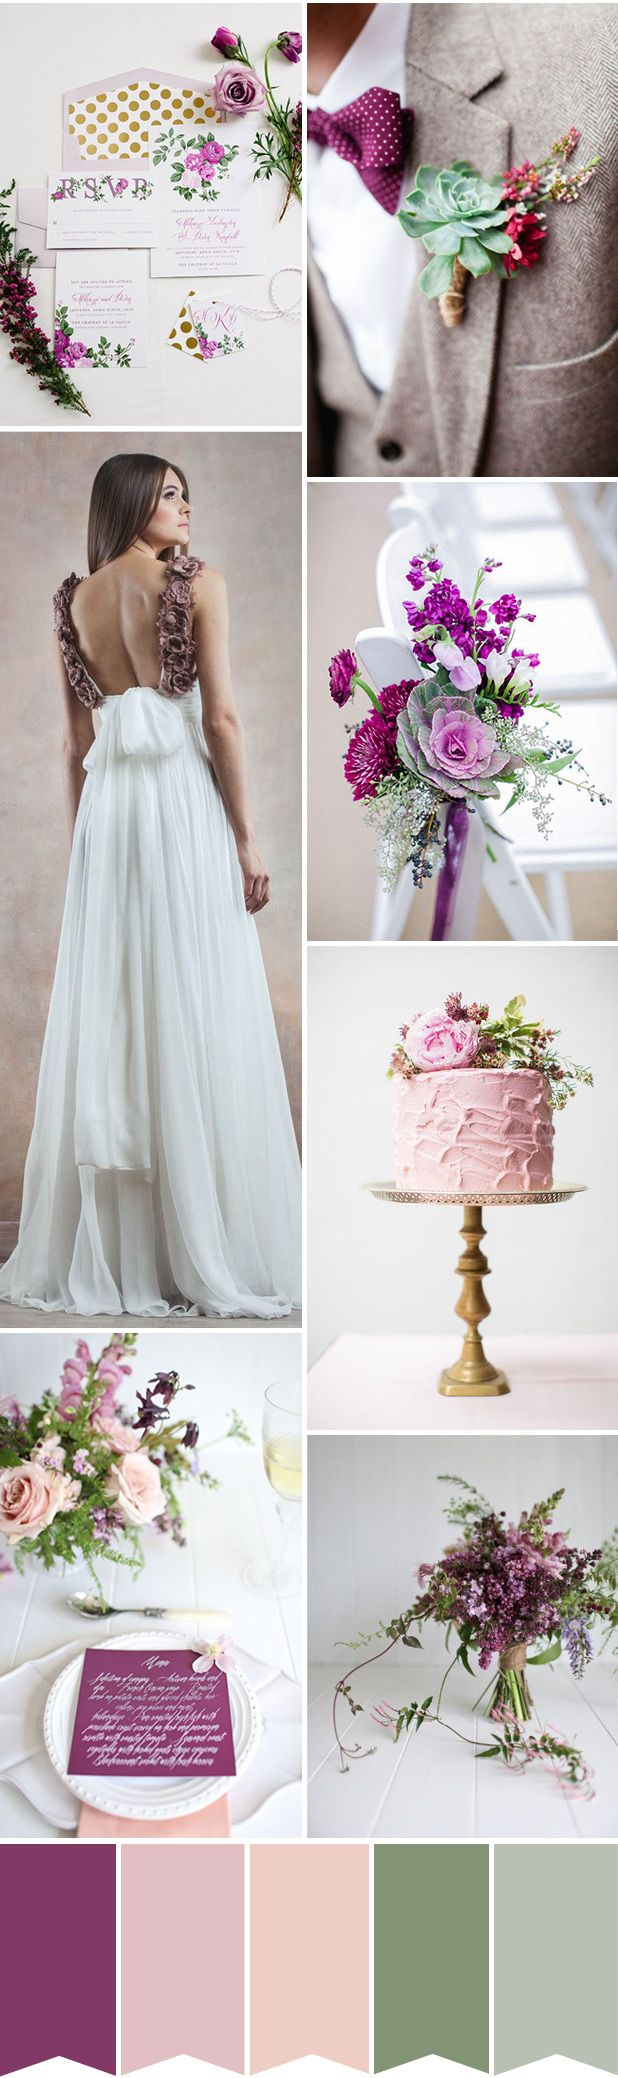 Shades of purple & muted greens with just a touch of the palest pink to keep things light & romantic in today's Purple and Green Wedding Colour Palette...